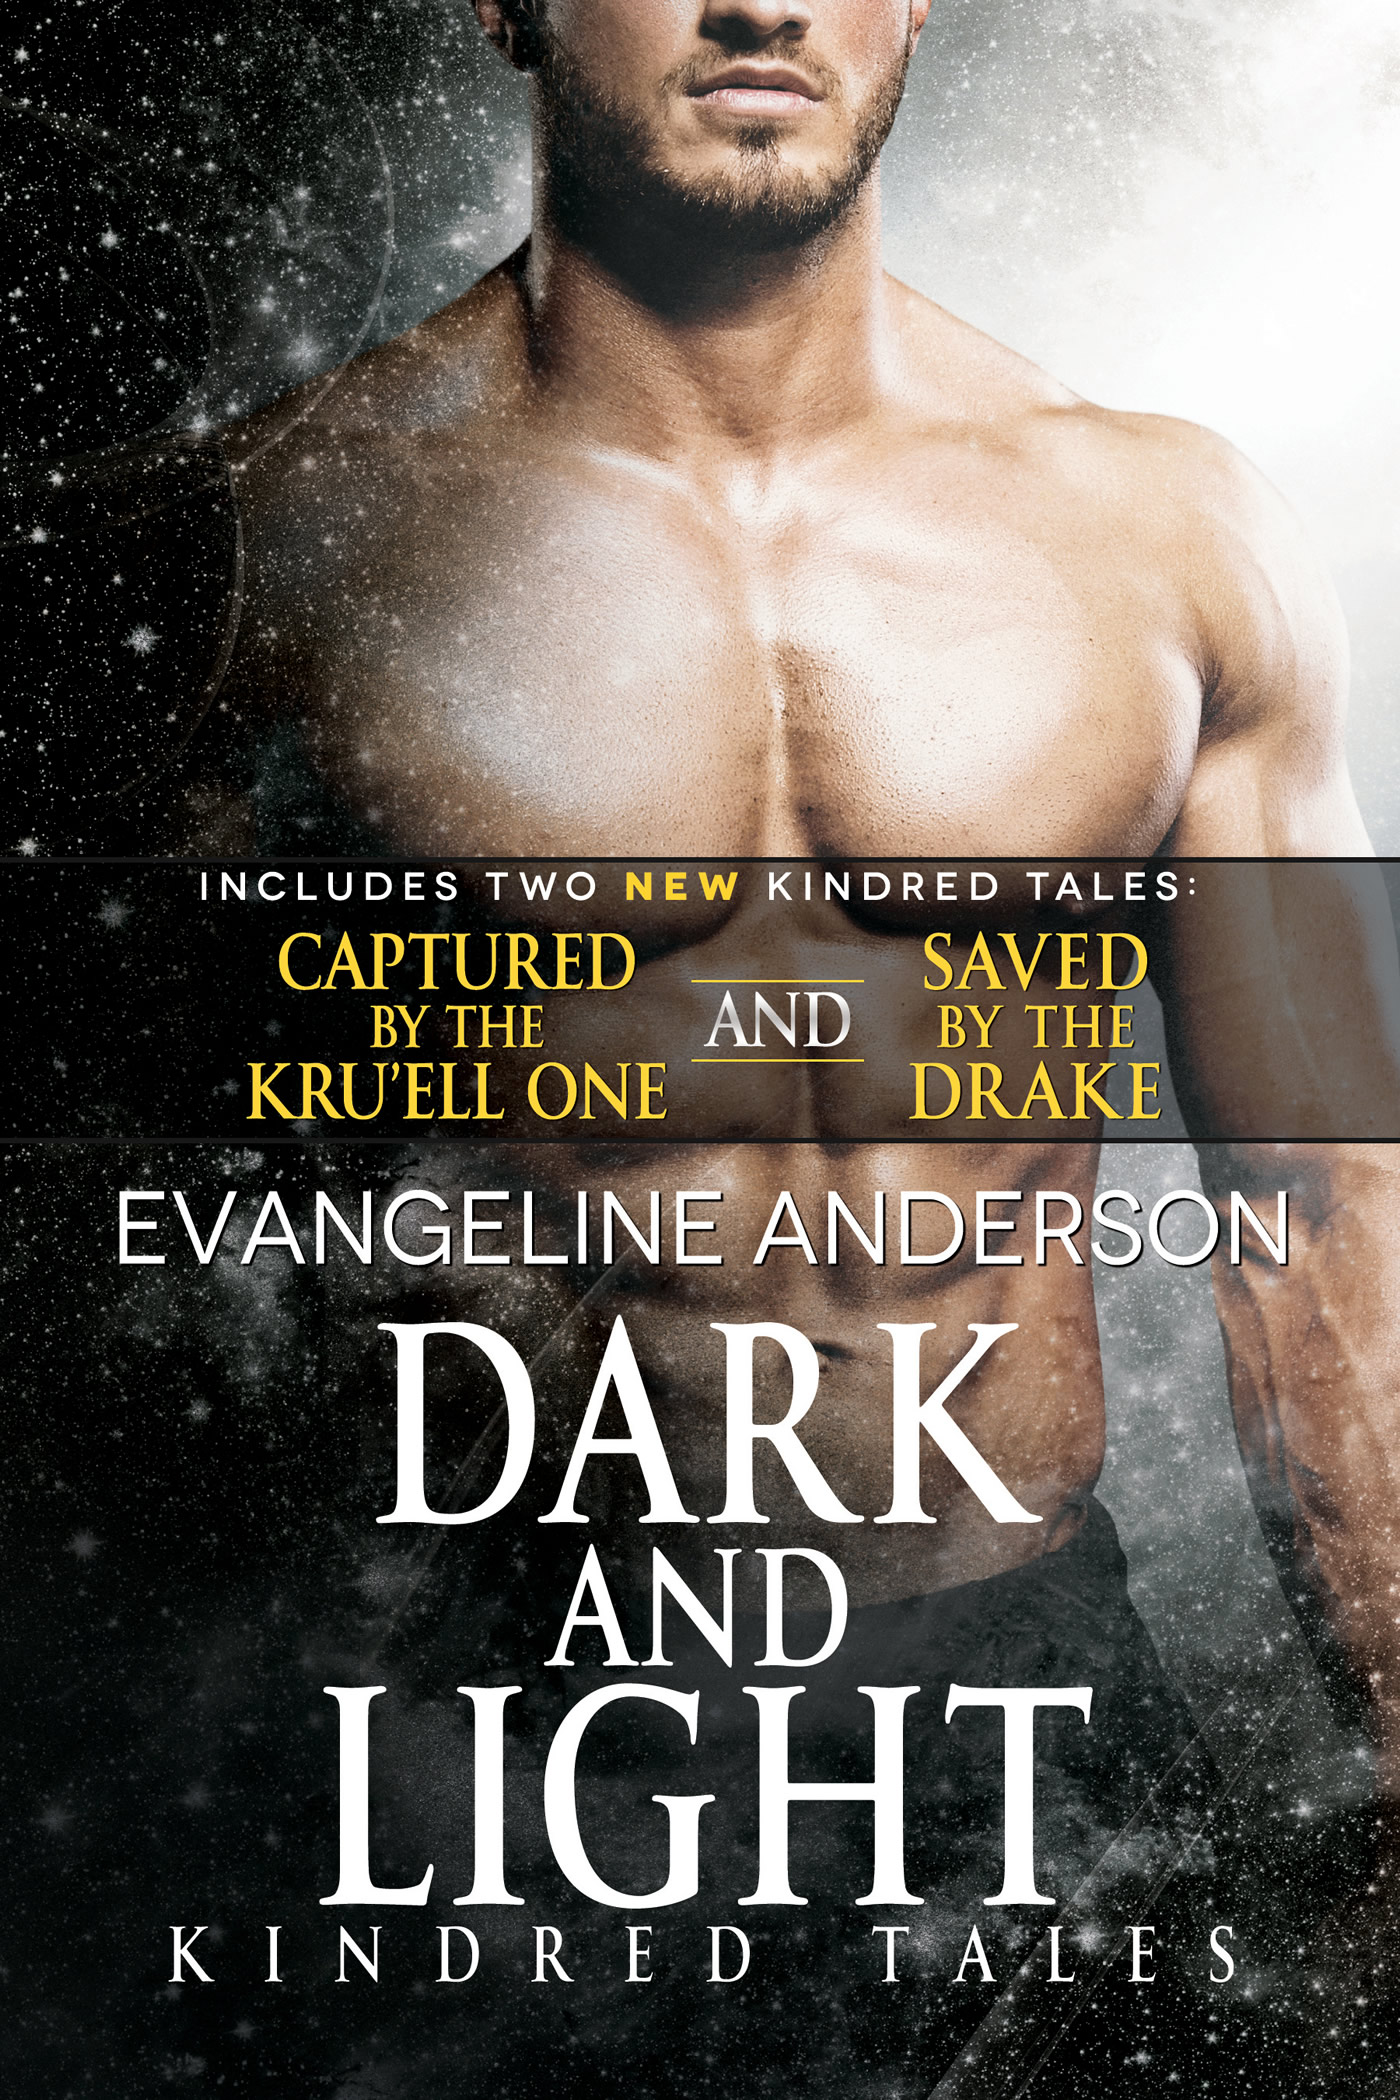 The kindred of darkness pdf free. download full